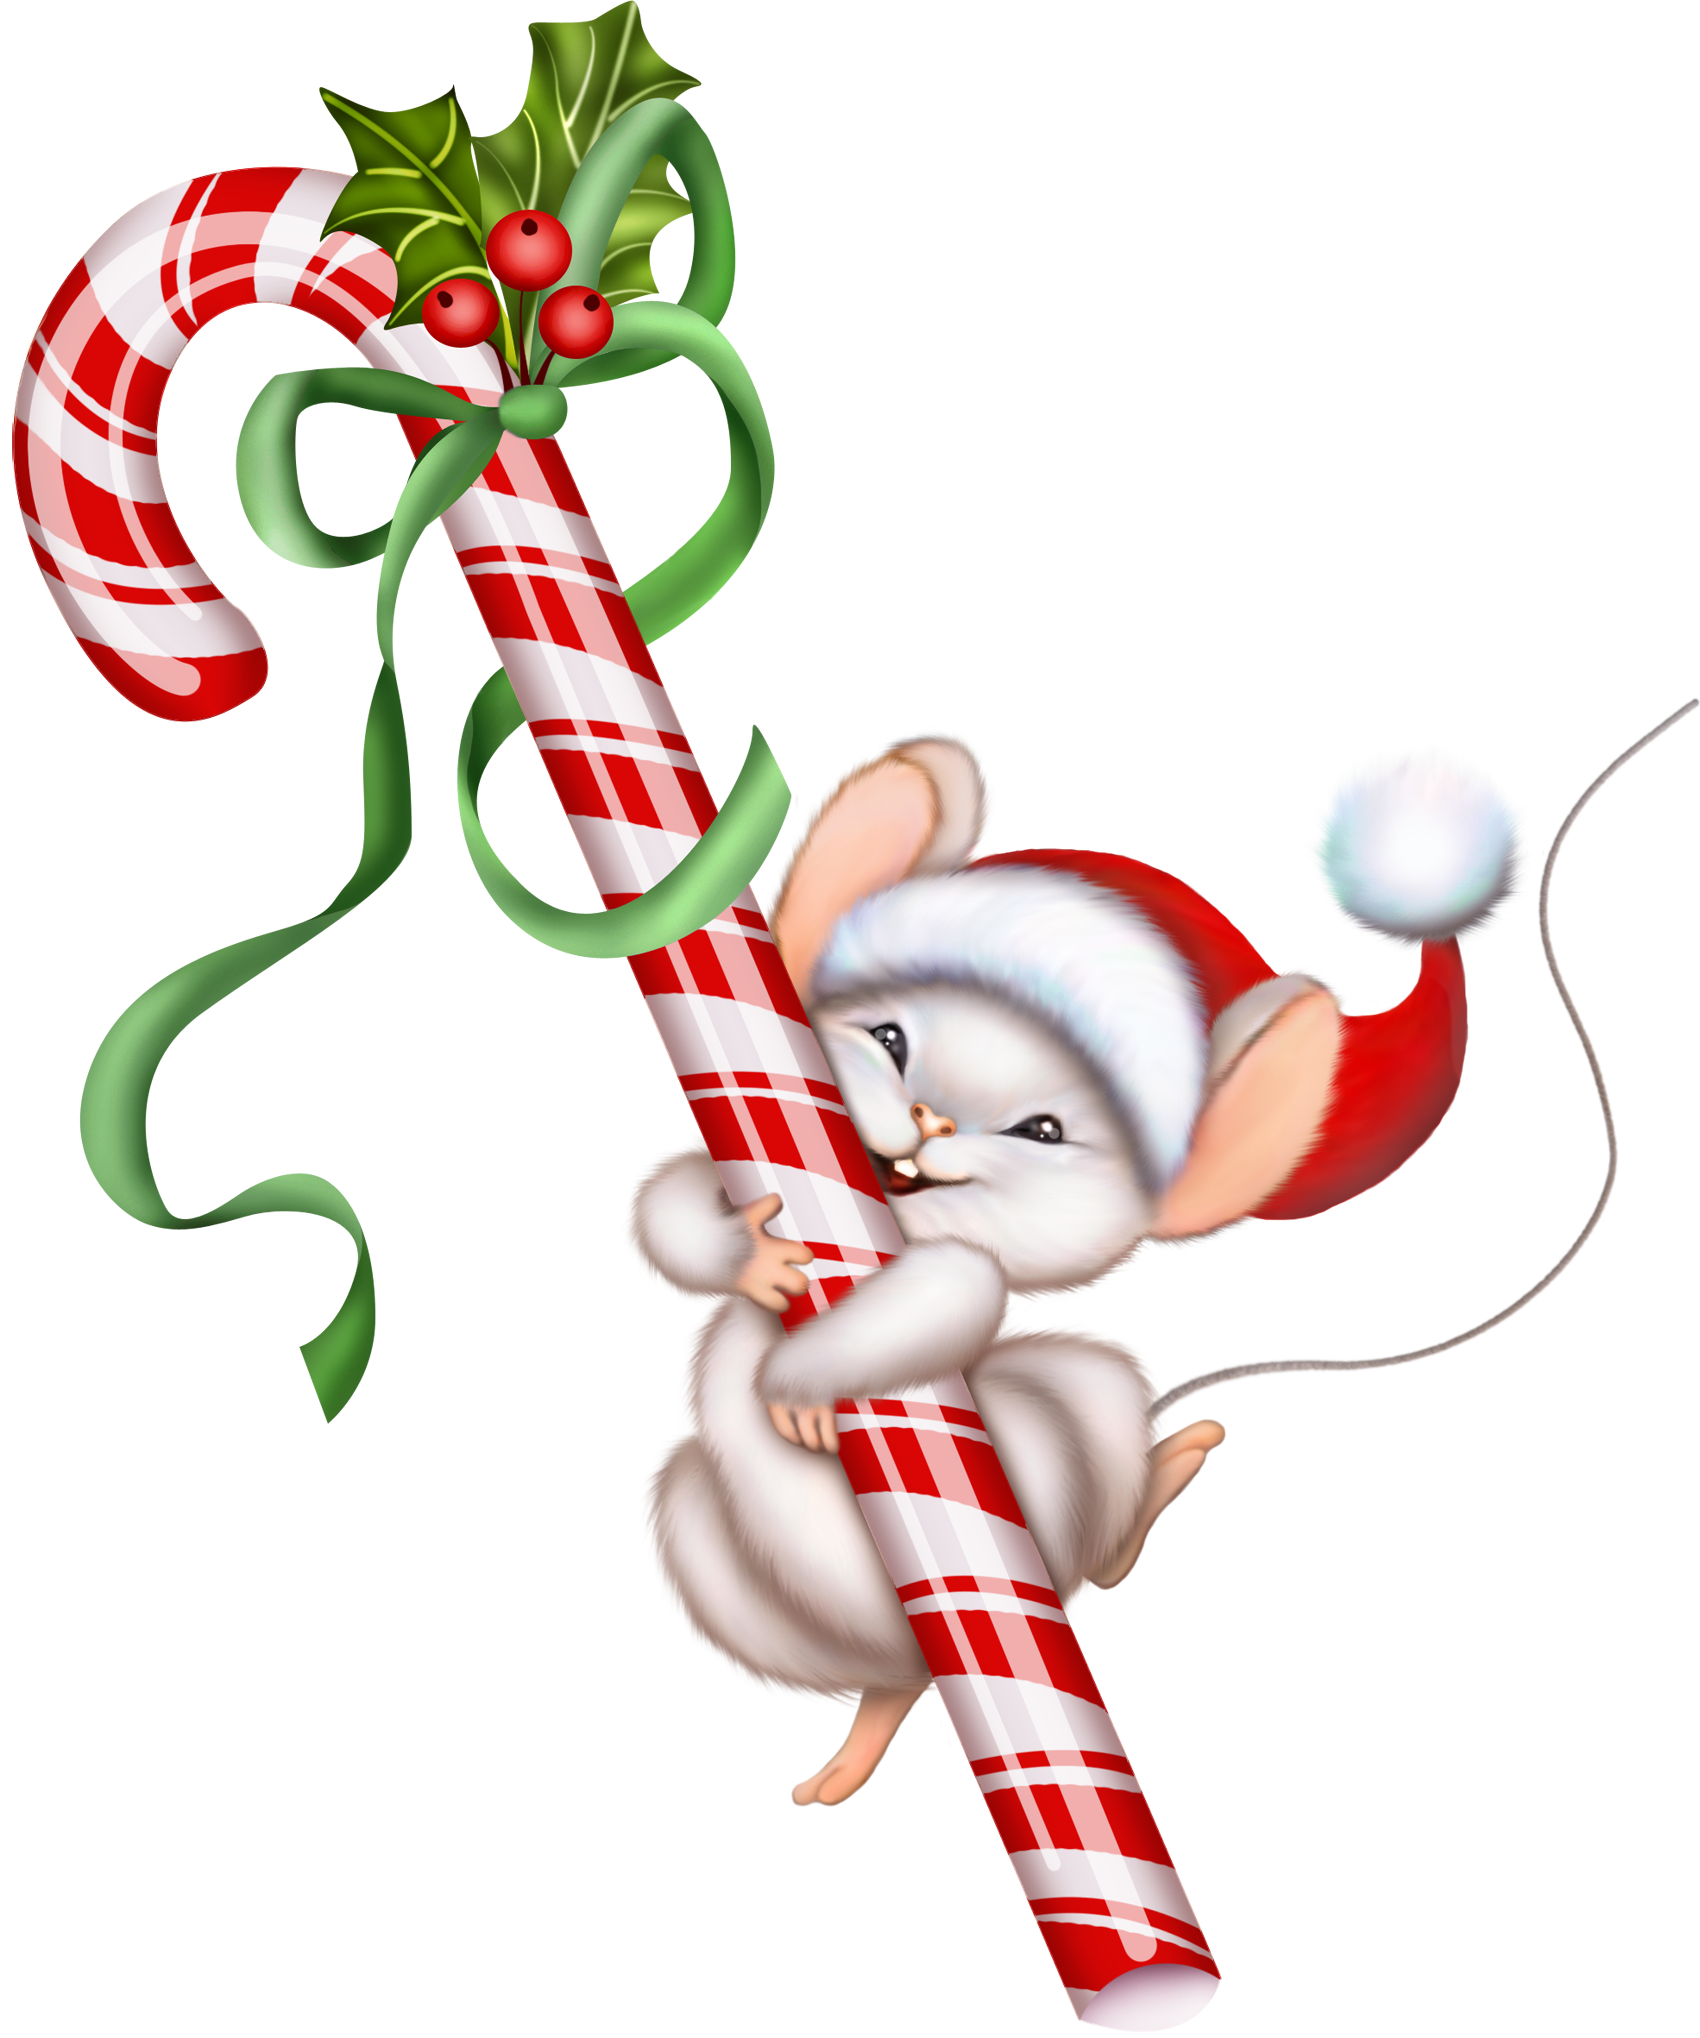 pin by crafty annabelle on christmas clip art 2 pinterest rh pinterest com Christmas Cookie Clip Art Free Free Christmas Poinsettia Clip Art